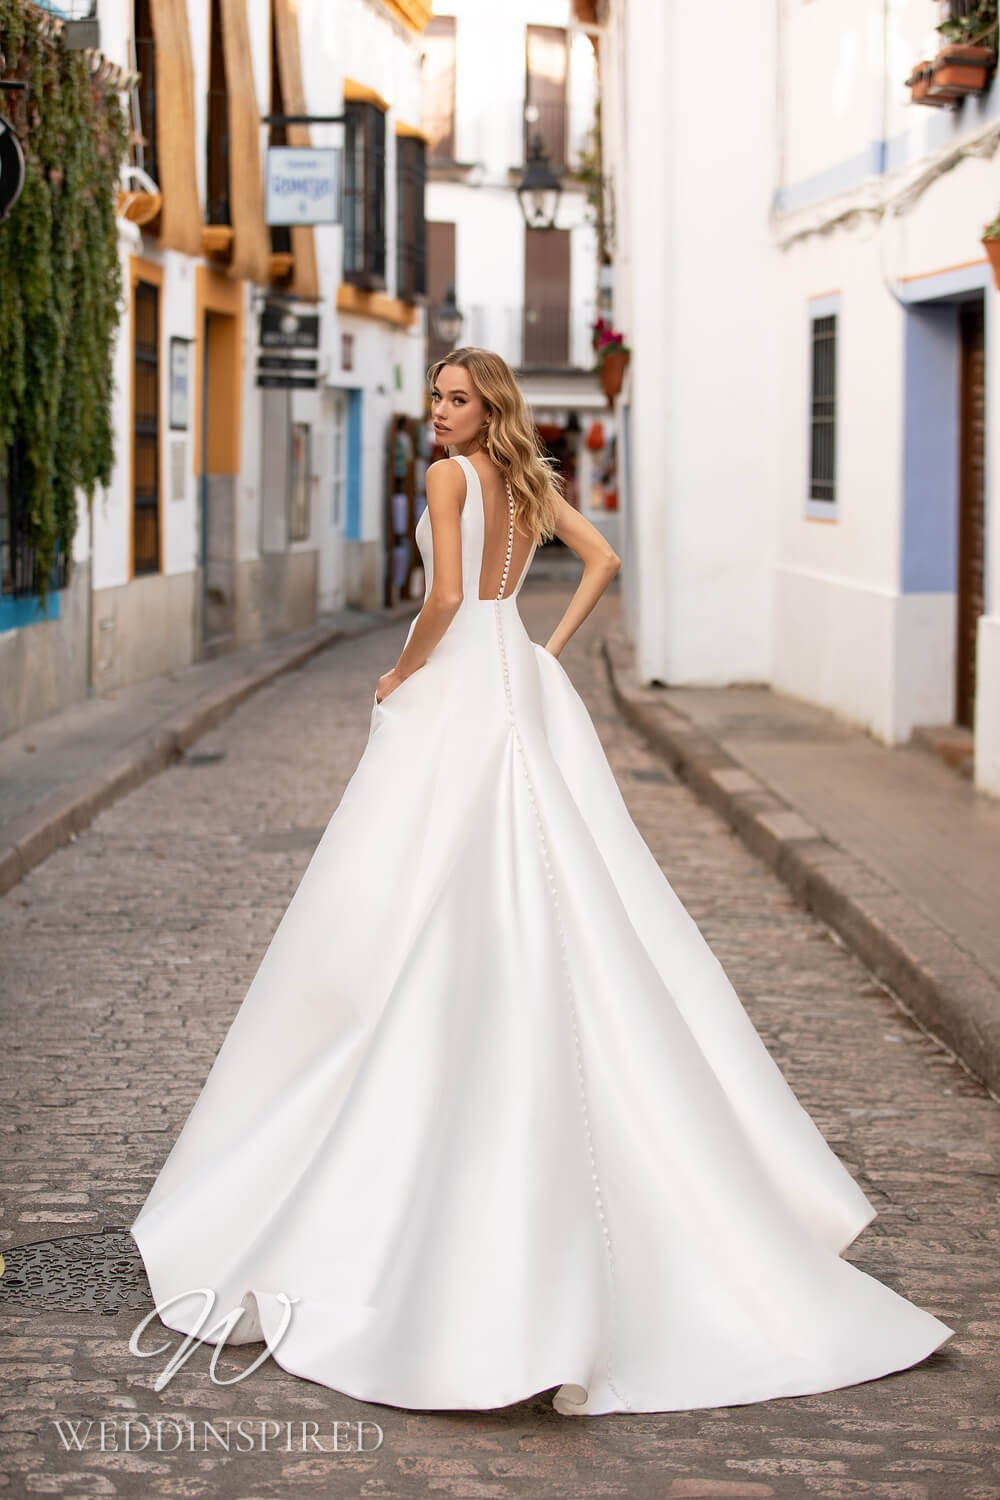 An Essential by Lussano 2021 backless satin princess wedding dress